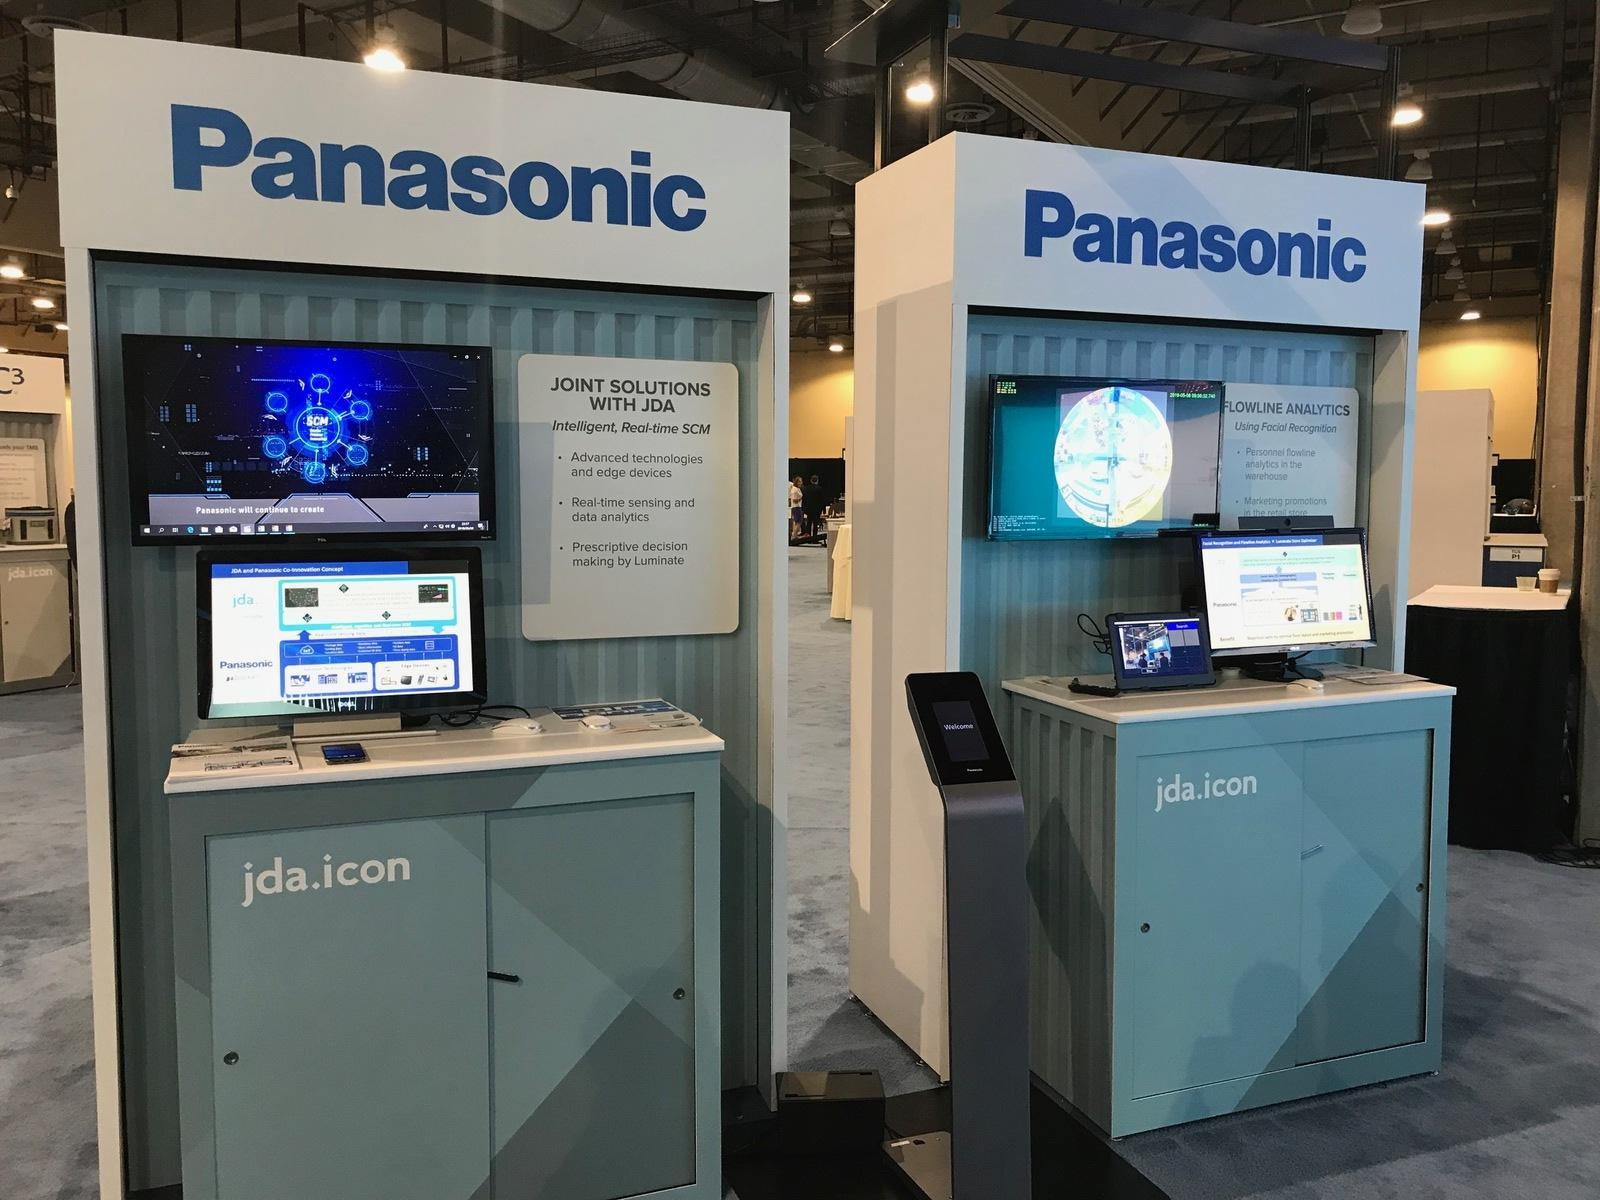 photo: At JDA ICON, Panasonic demonstrates its range of solutions for supply chain management within the Innovation Zone exhibition space.